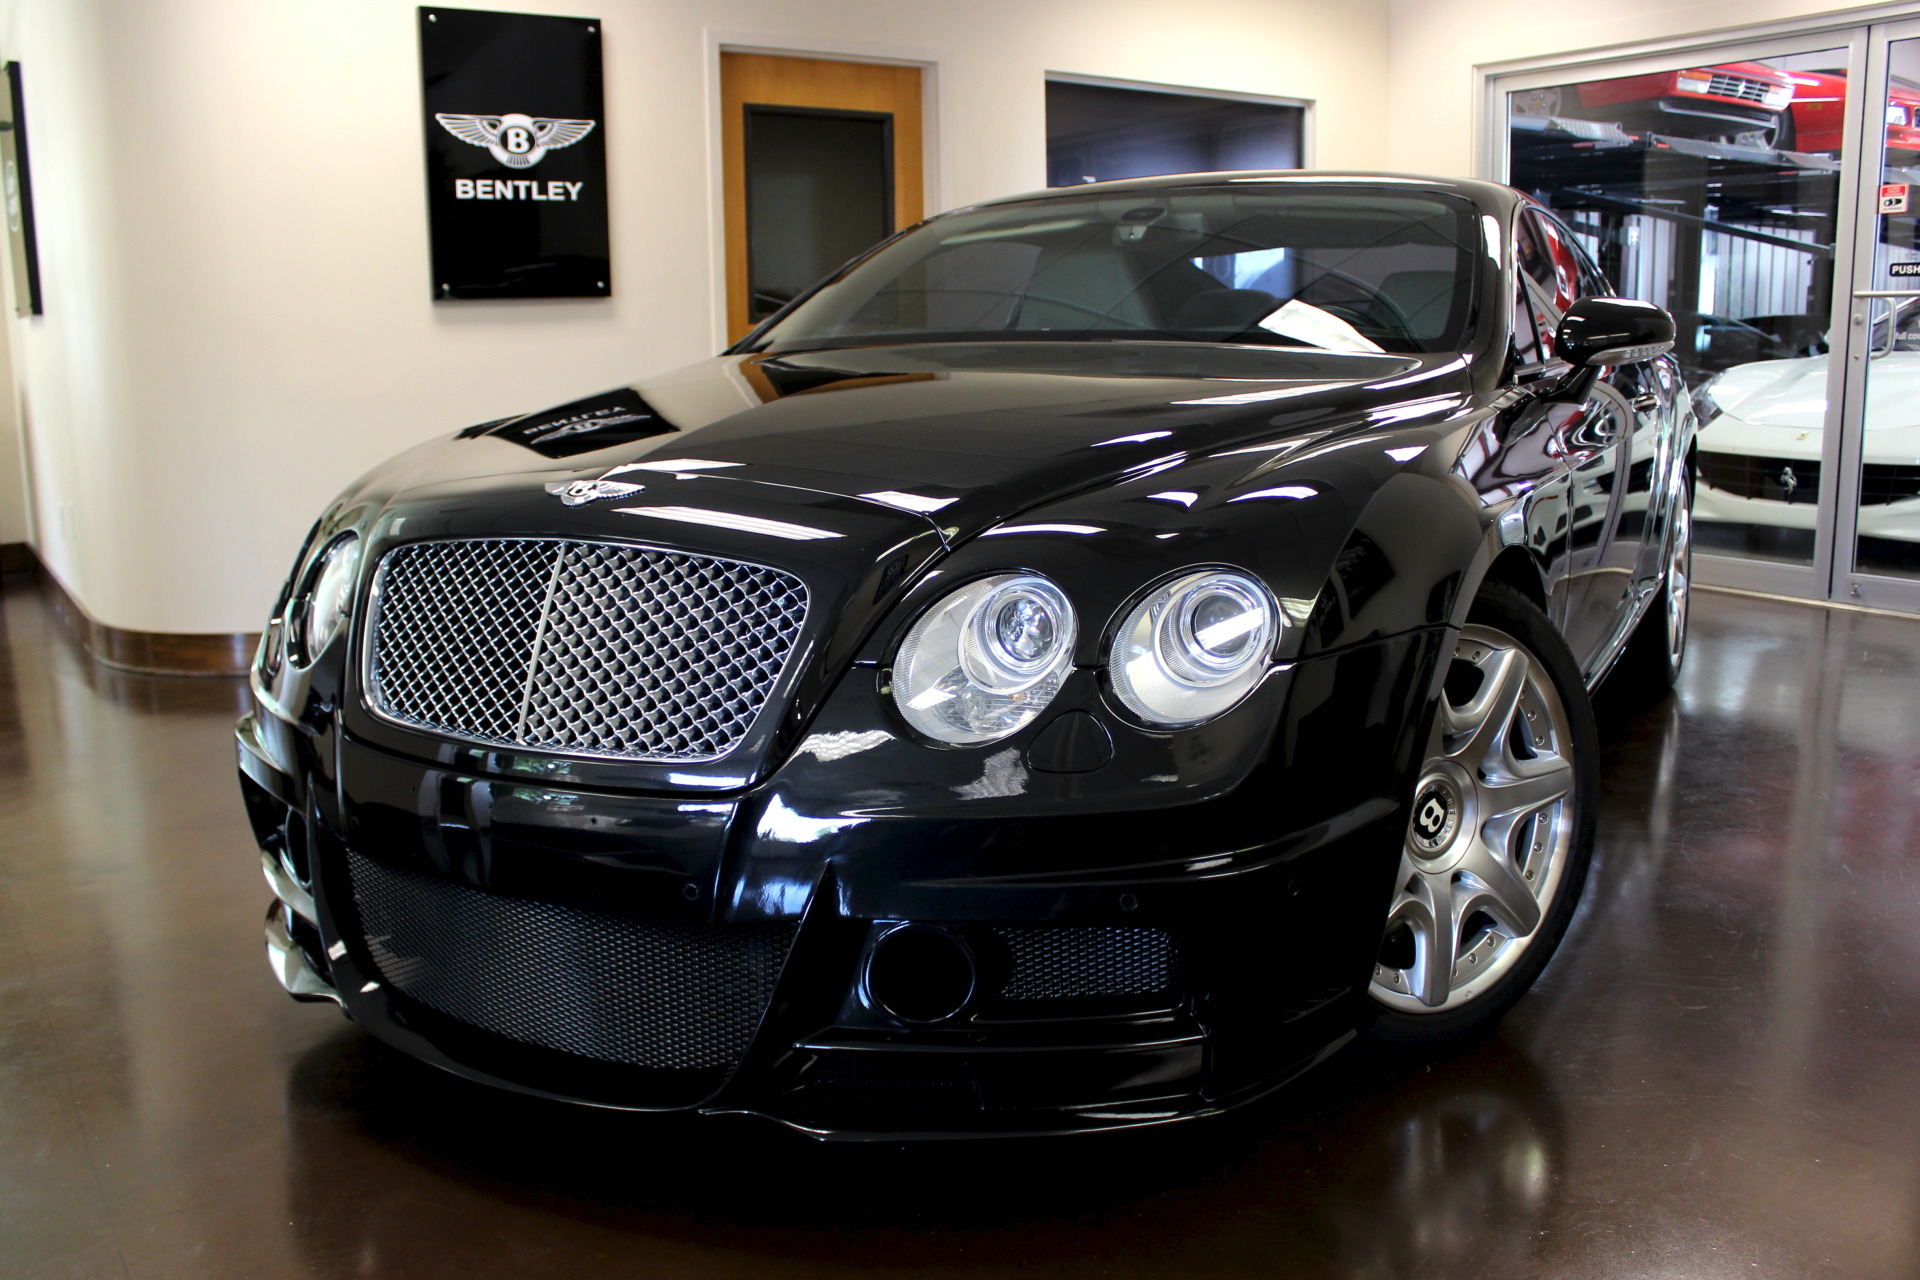 used 2005 bentley continental gt stock p2957 ultra luxury car from merlin auto group. Black Bedroom Furniture Sets. Home Design Ideas